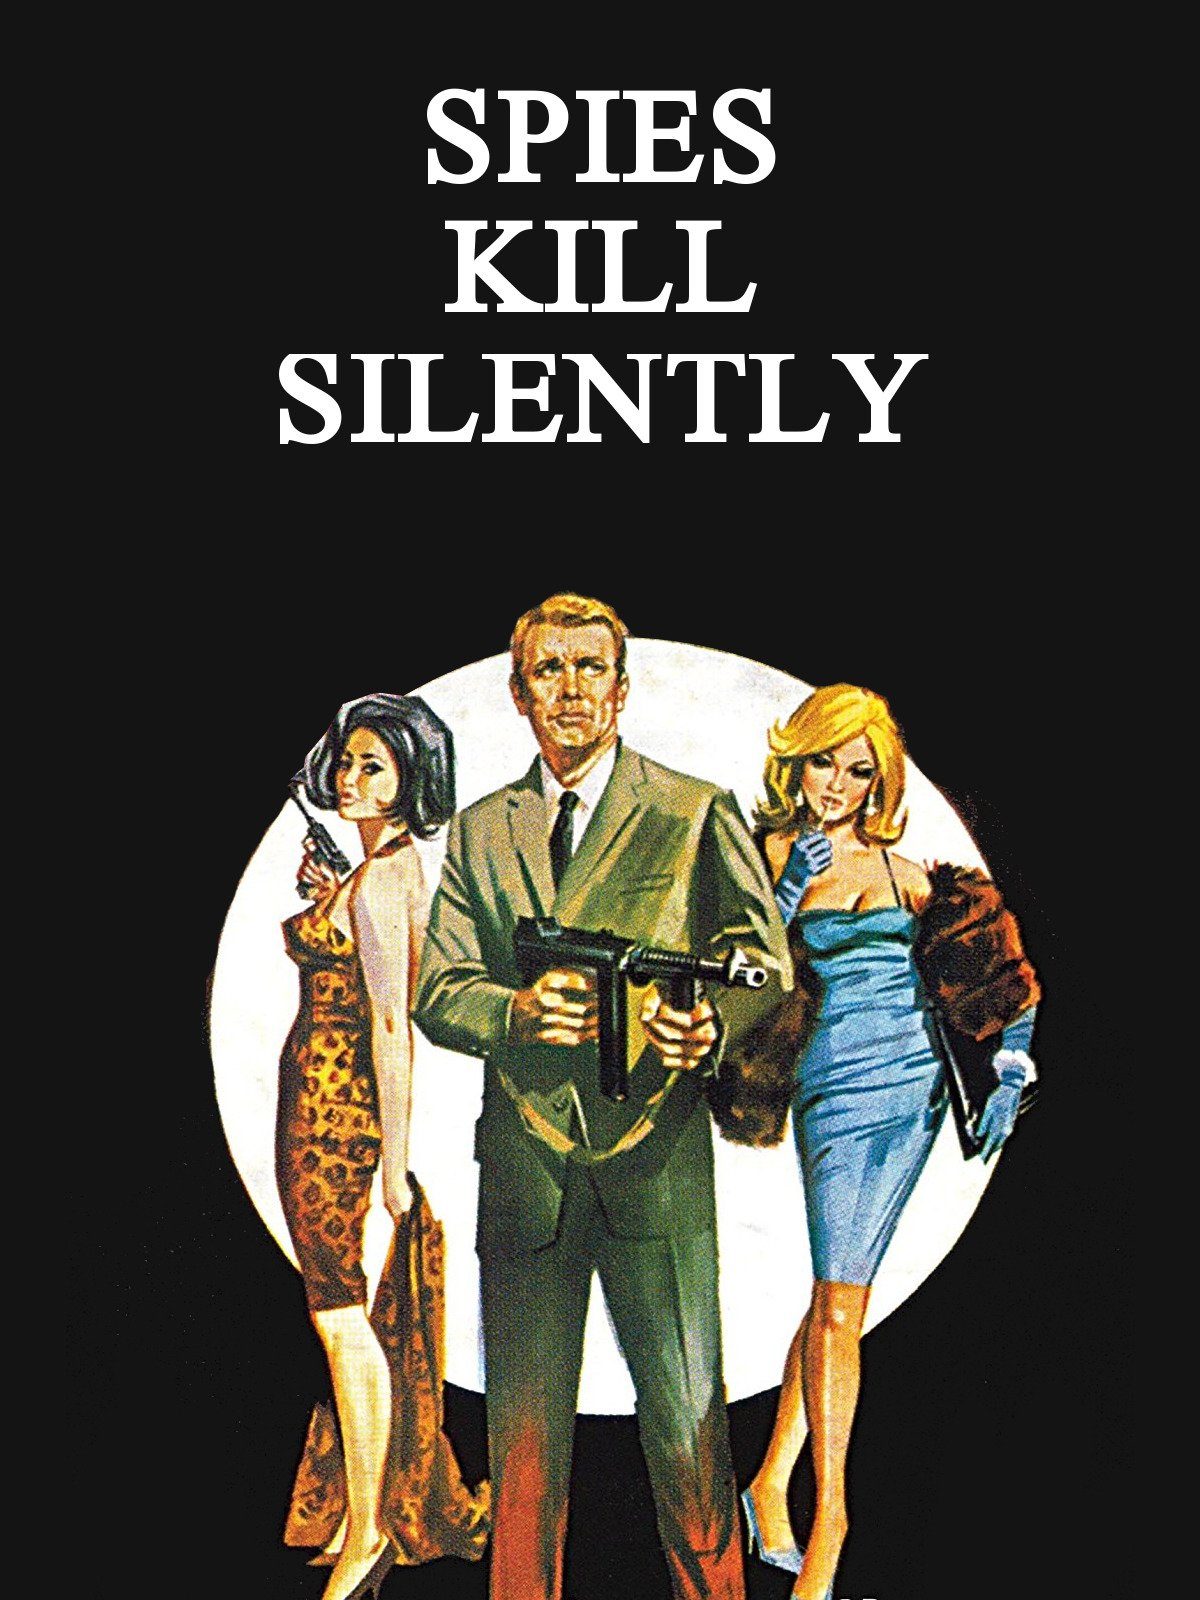 Spies Kill Silently